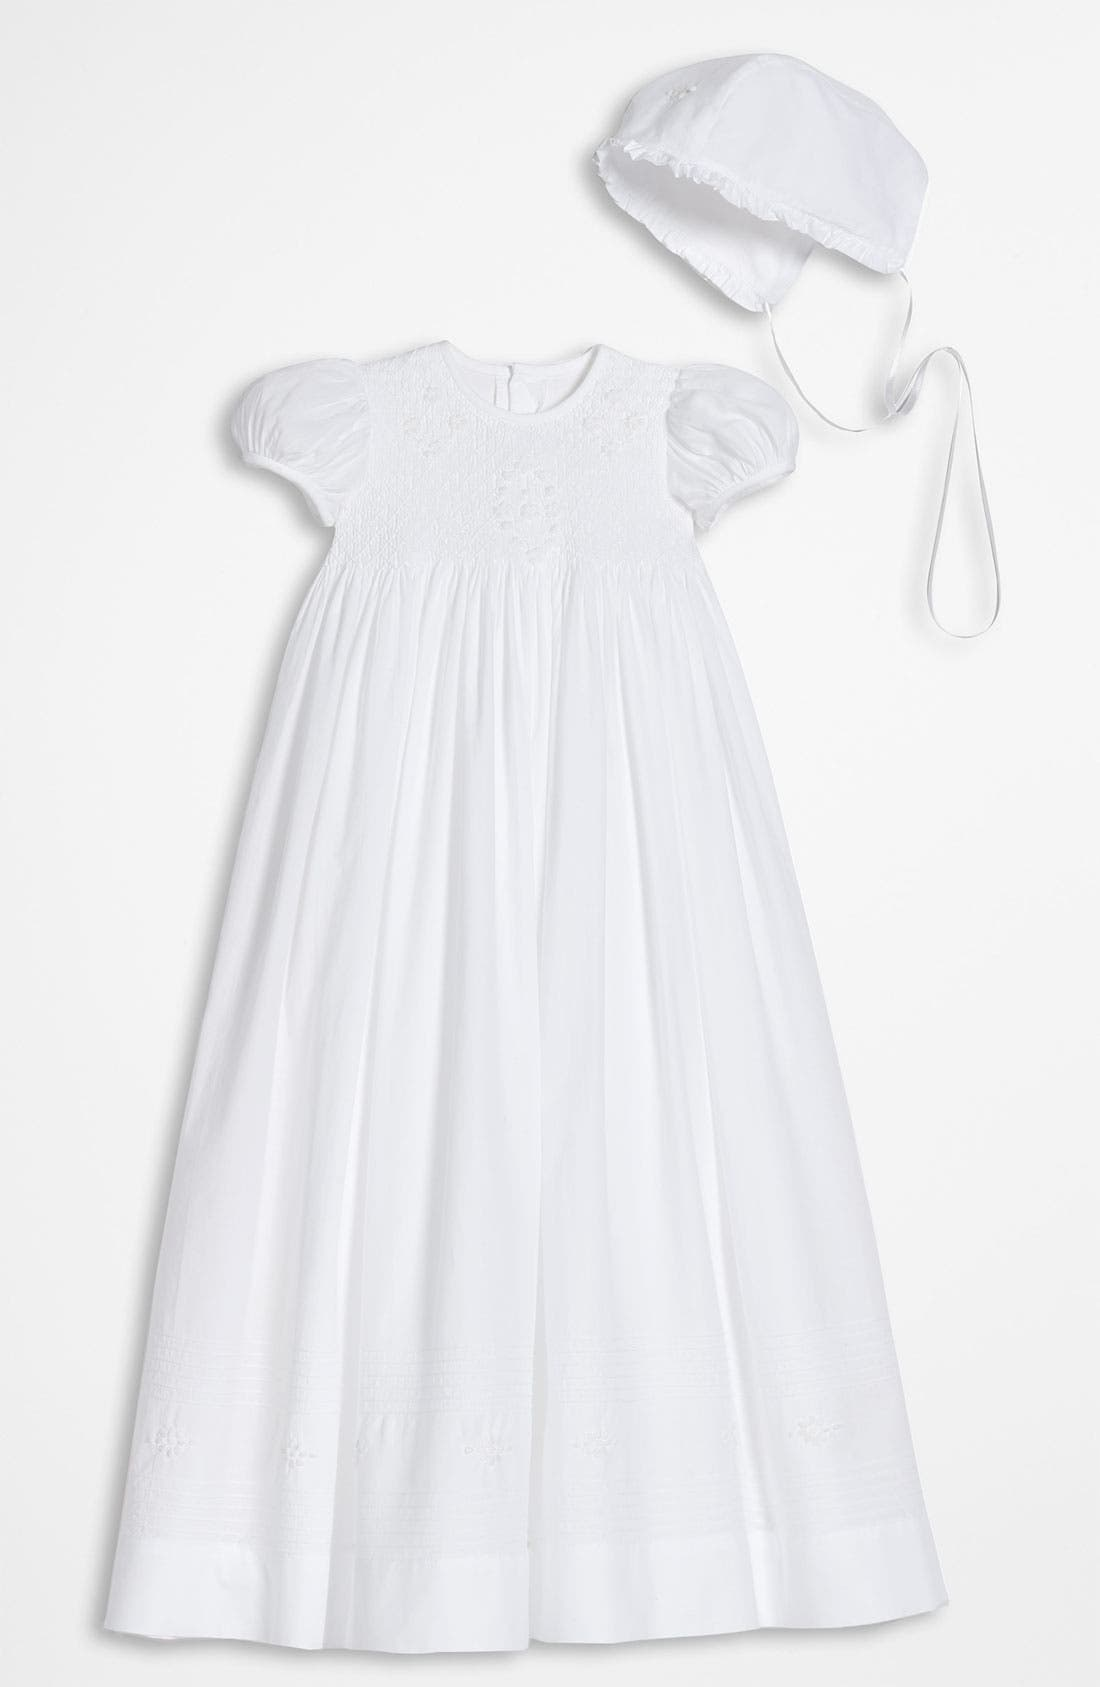 Main Image - Little Things Mean a Lot Gown (Infant)